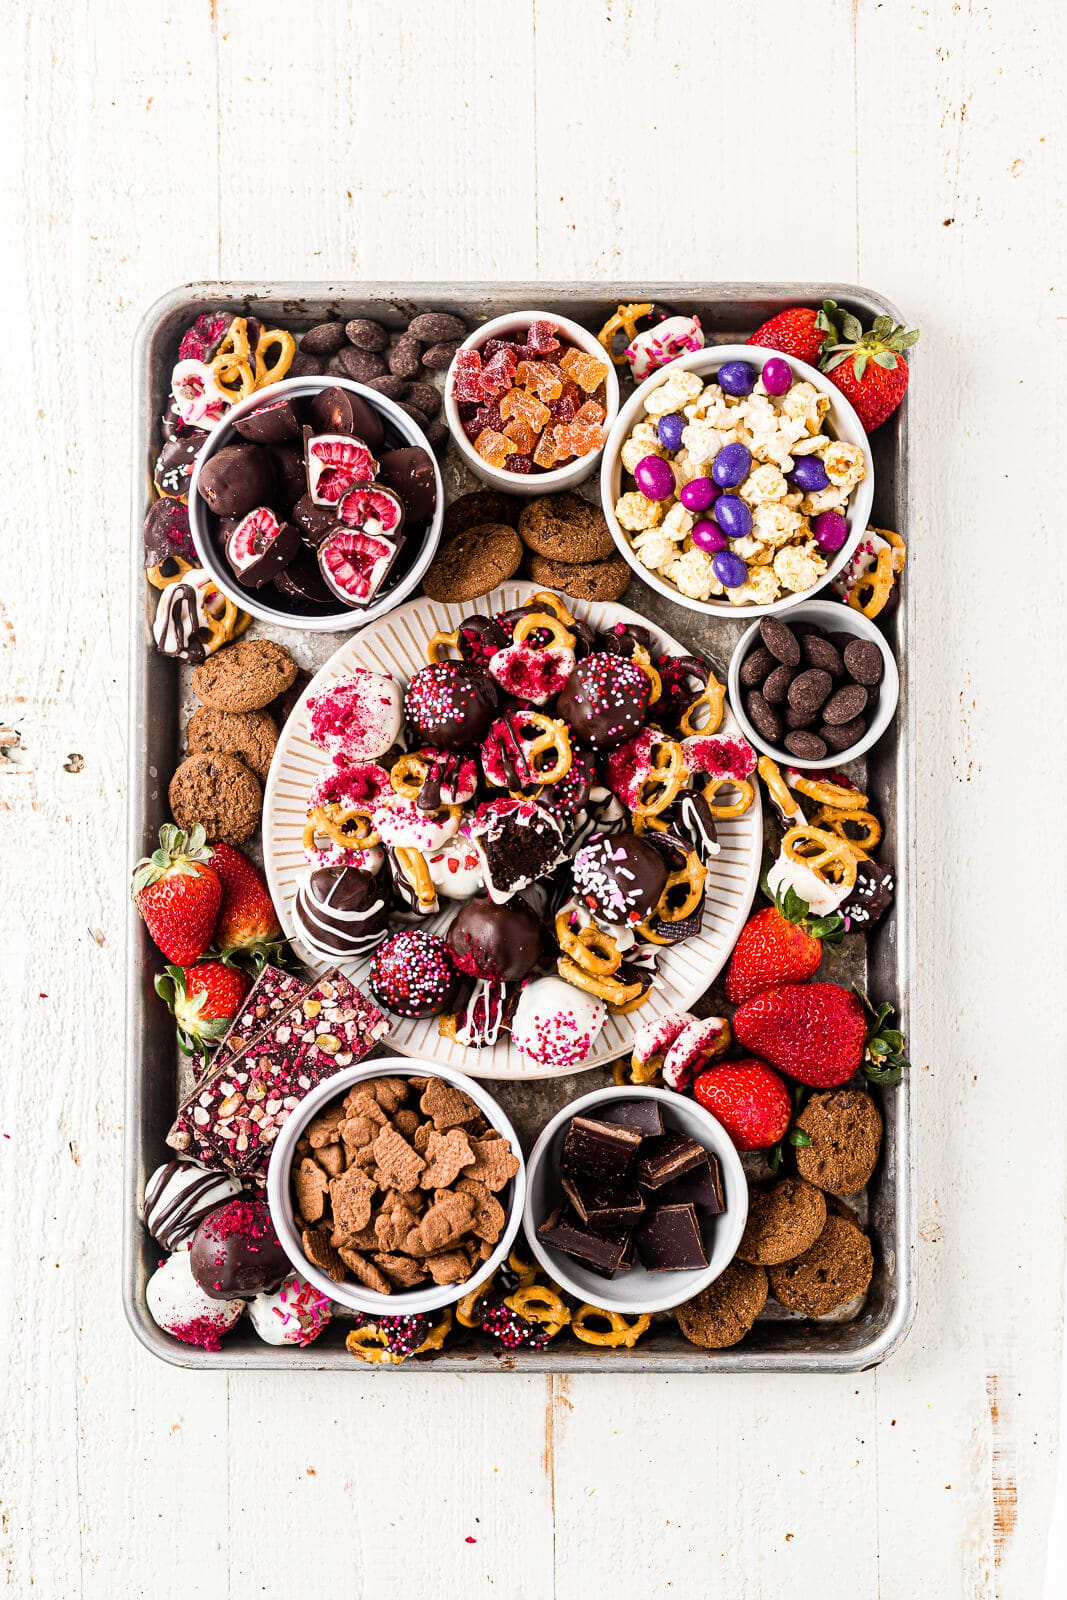 a healthy valentines'd day dessert board full of chocolate covered fruit, pretzels, nuts, popcorn and cookies